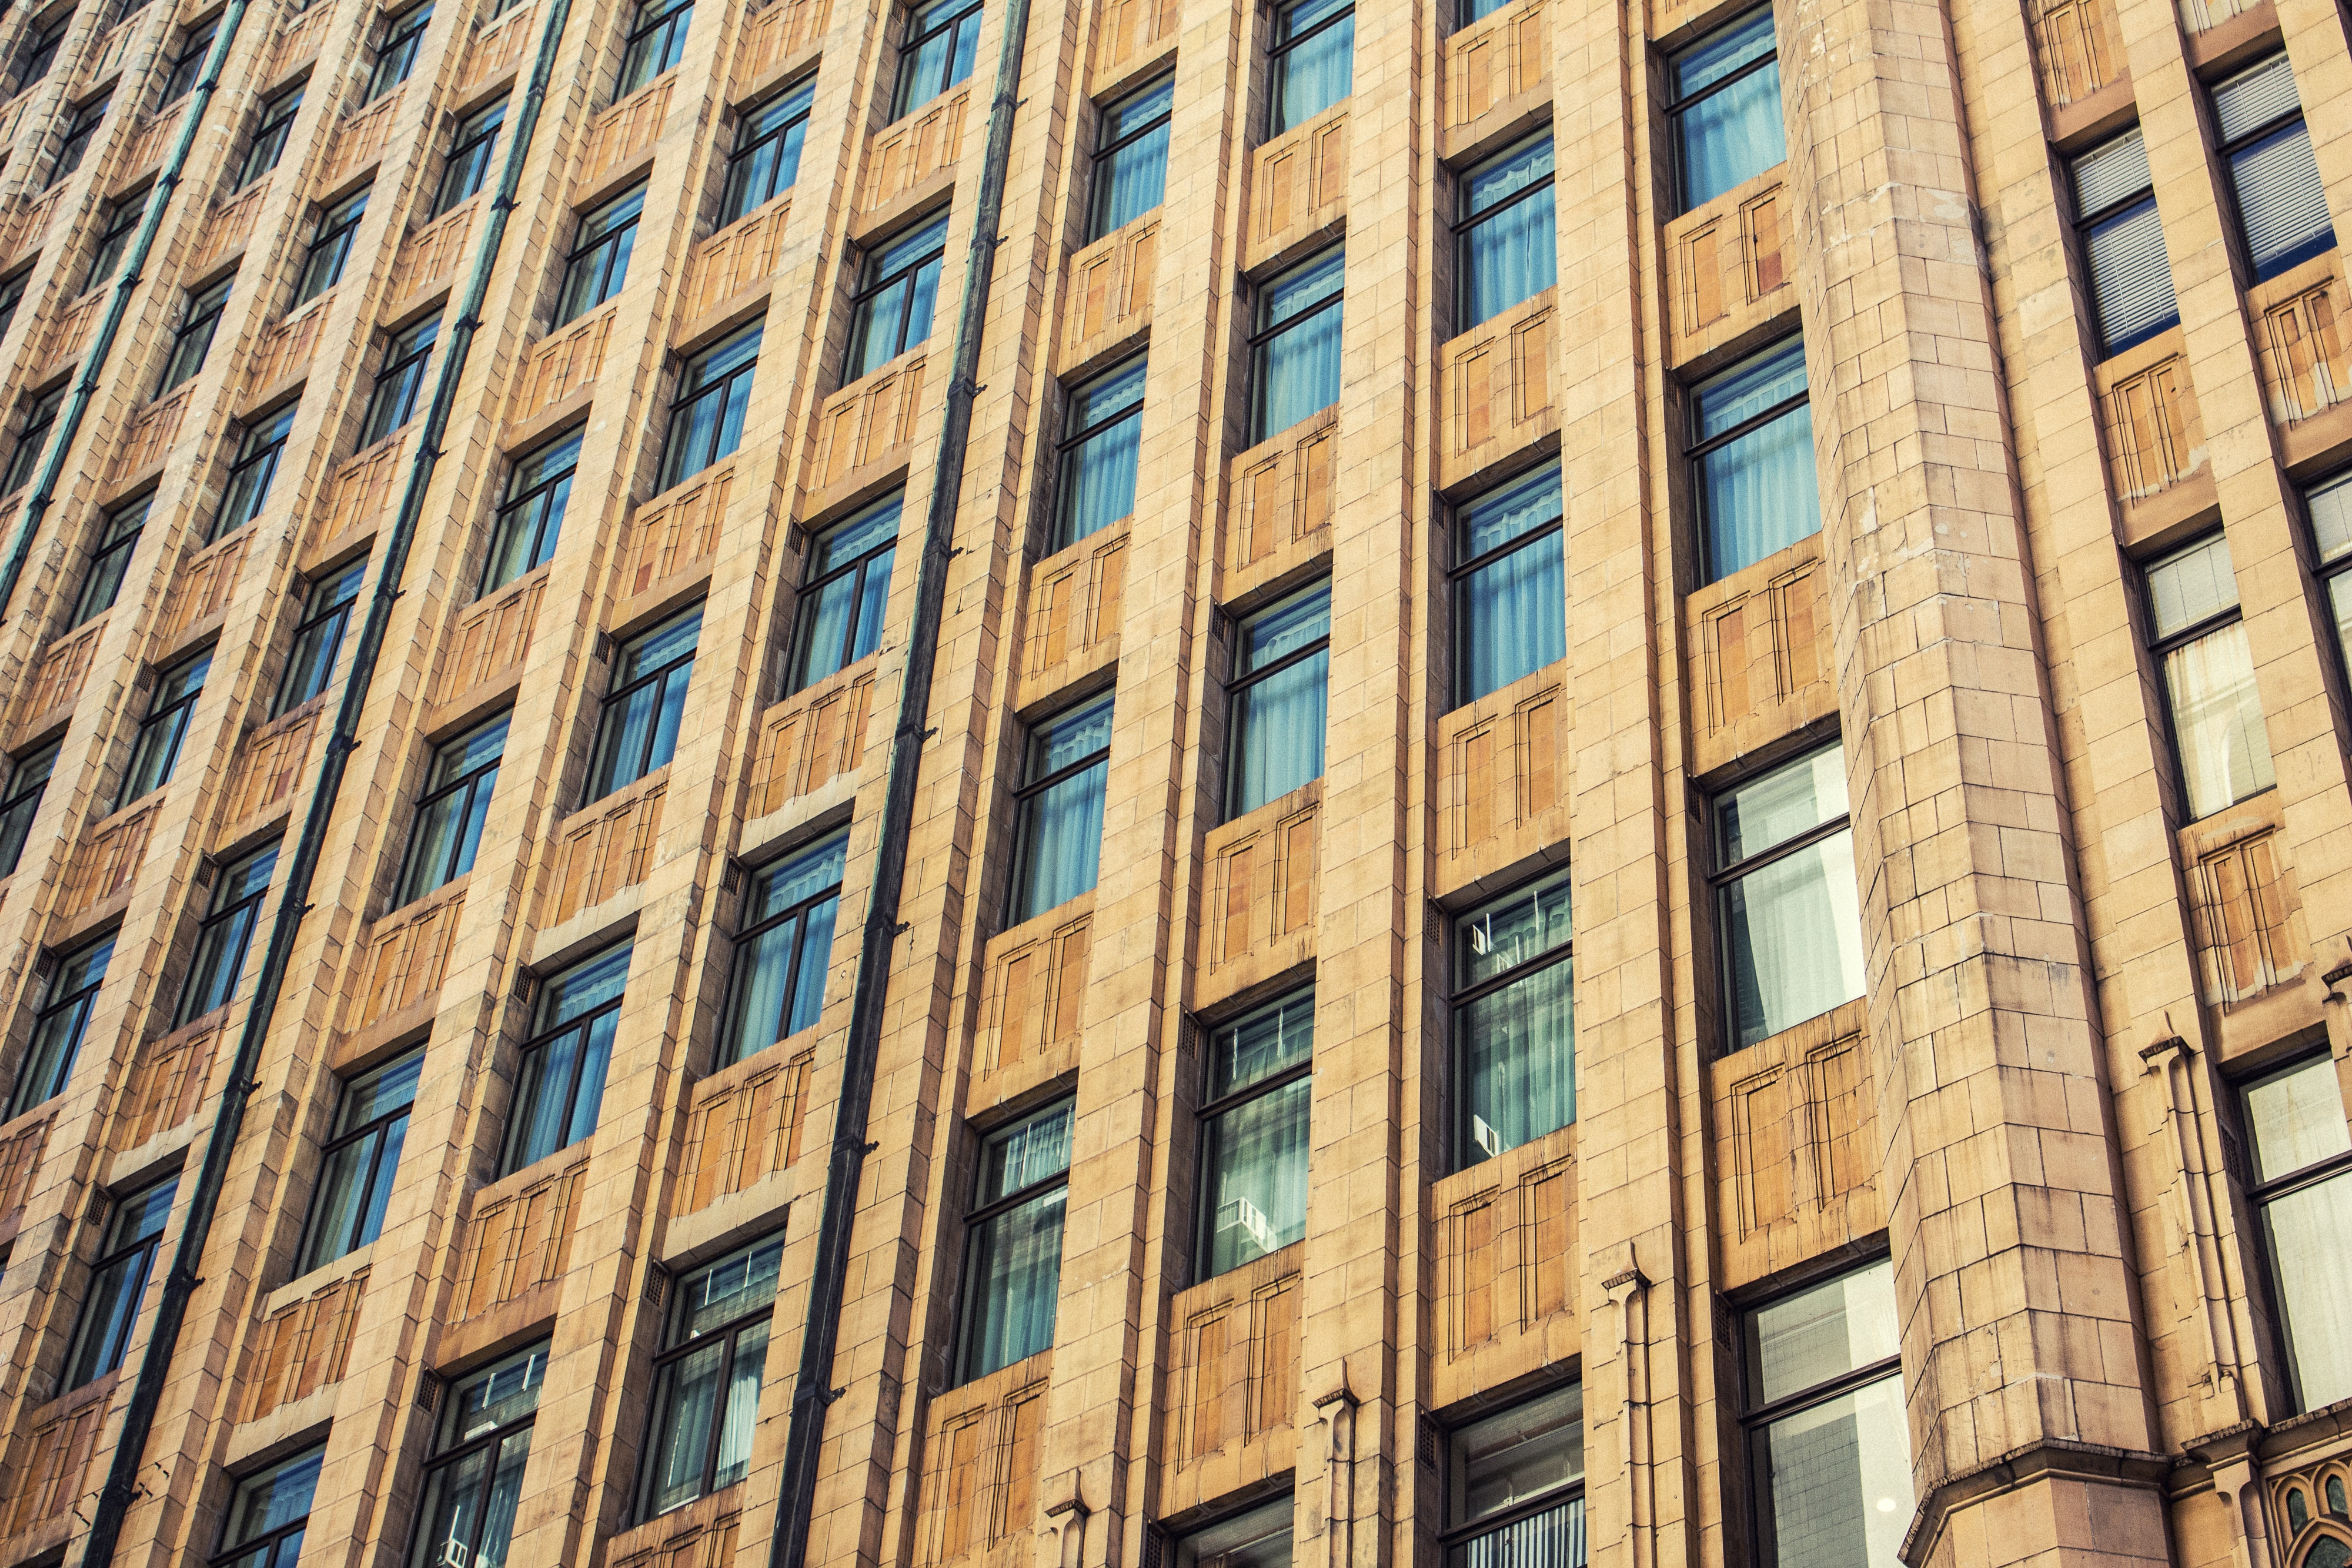 Facade of apartment building in the city with brown exterior and reflective windows in a pattern